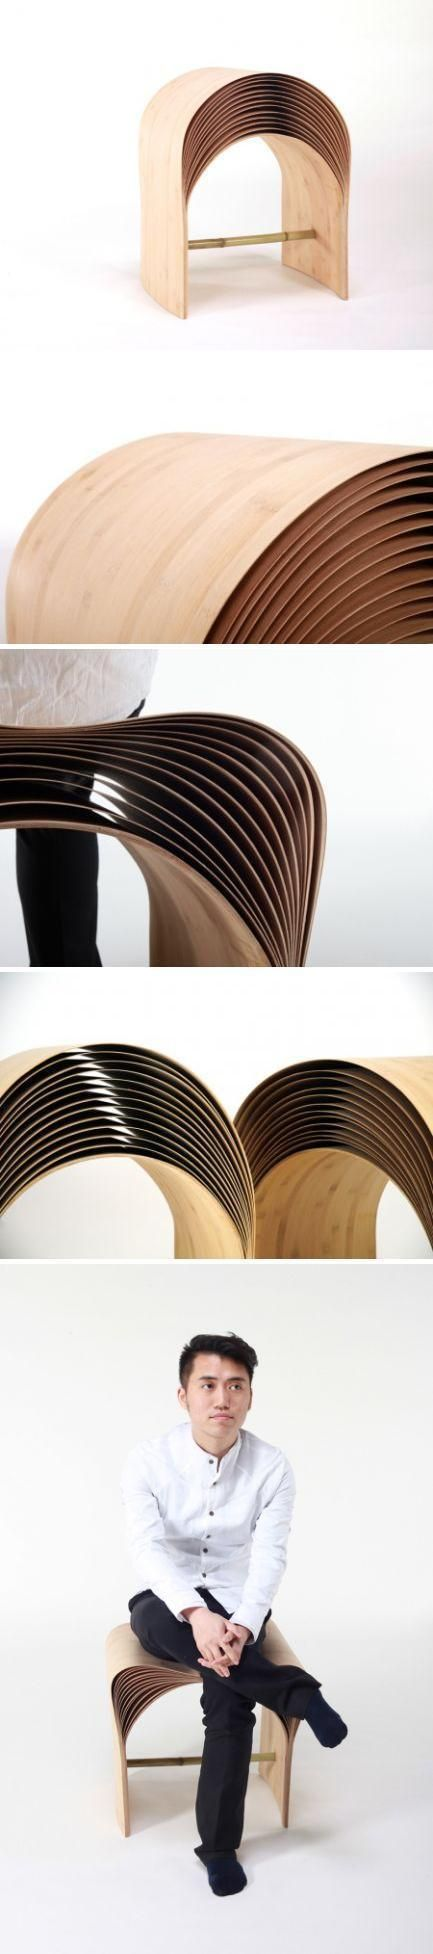 "The Hangzhou Stool - by Atelier Chen Min - consists of many layers of bamboo veneer. Each veneer is made of several ultra thin bamboo layers, aligned vertical to each other. Each veneer becomes not only very flexible but also robust. The layers give a very special ""arc"" of the stool, just like the ripples on the water surface. When sit, the more weight the stool receives, the deeper the arc will be bent, and therefore the more elasticity the user will feel. www.chen-min.com"